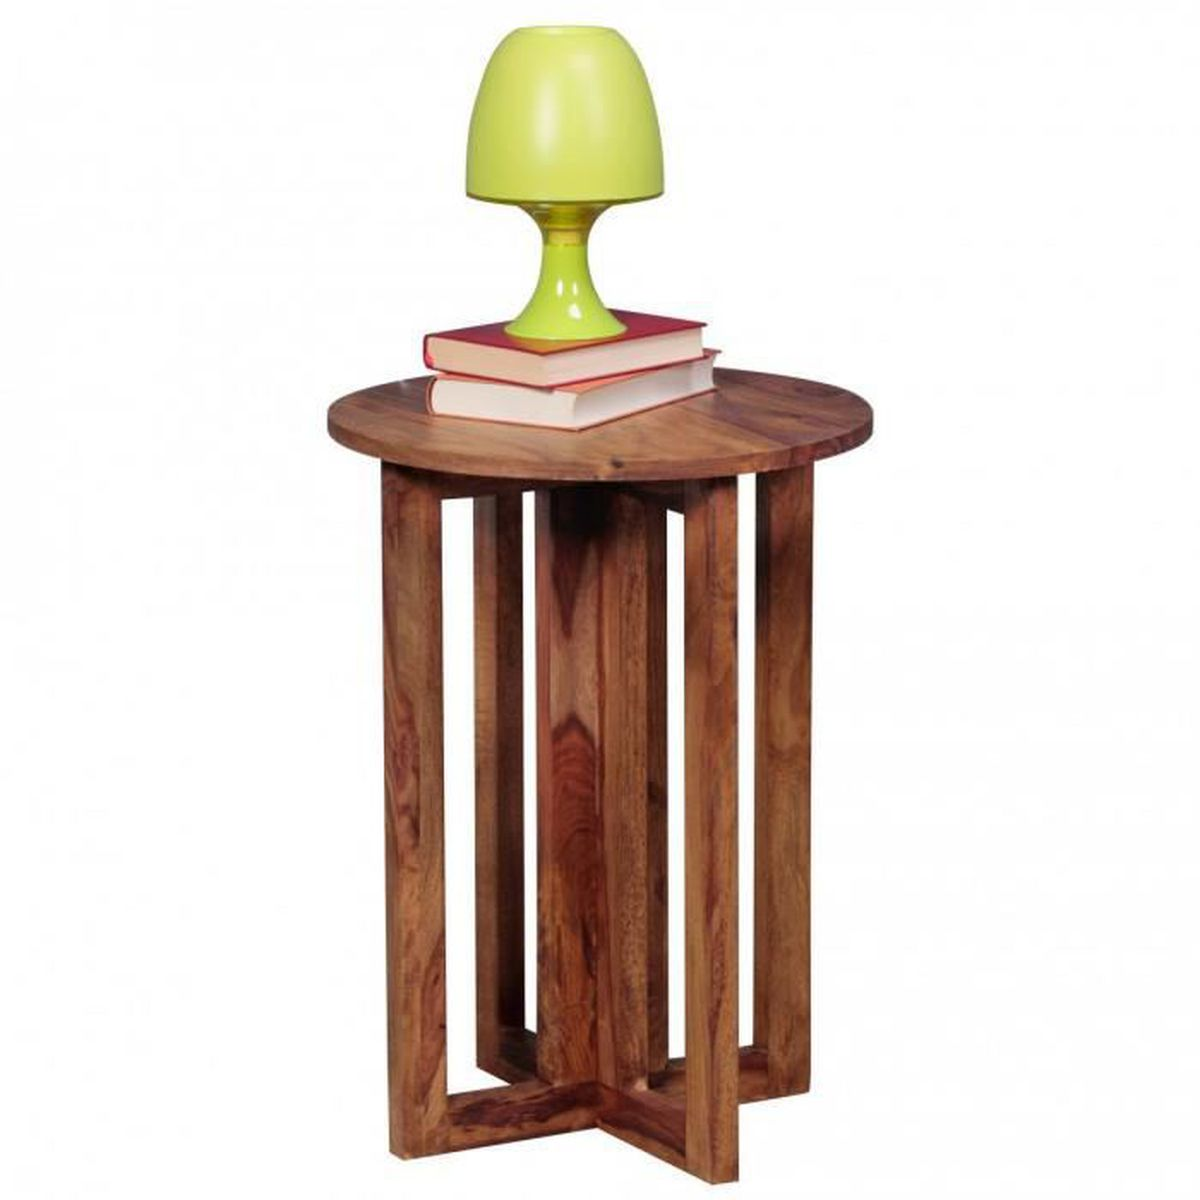 Table solide design sheesham bois table anstell 45 x 45 cm for Table de chevet largeur 20 cm